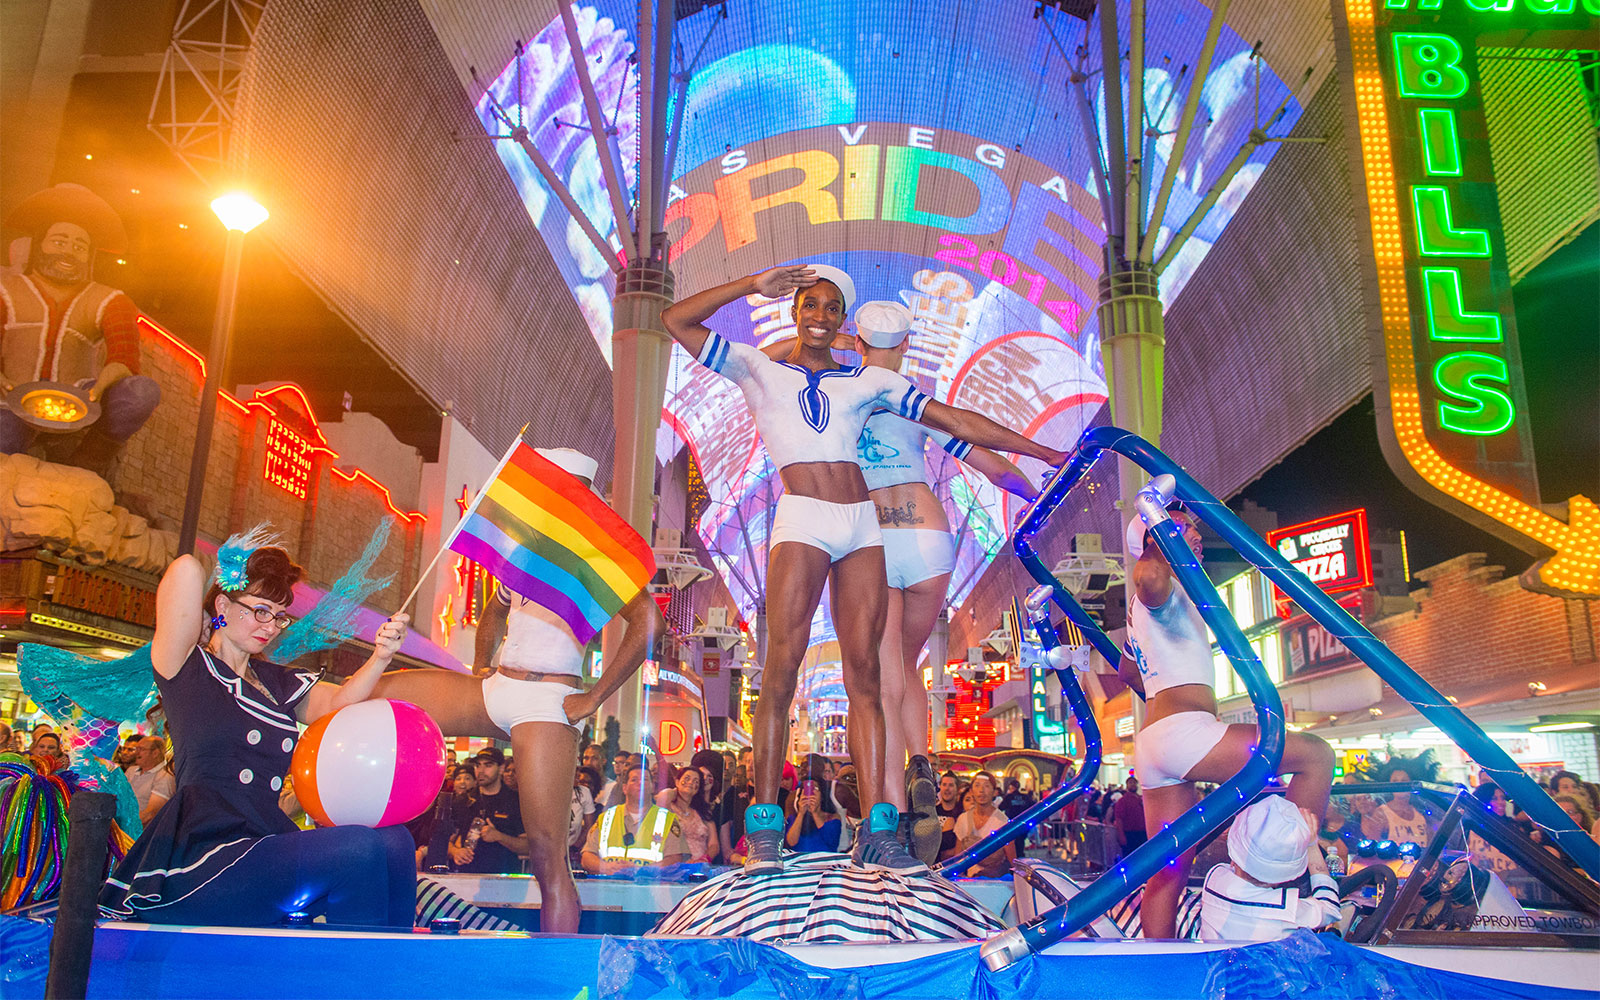 The Guide to Pride: Nine LGBT Destinations to Visit This Summer: Las Vegas